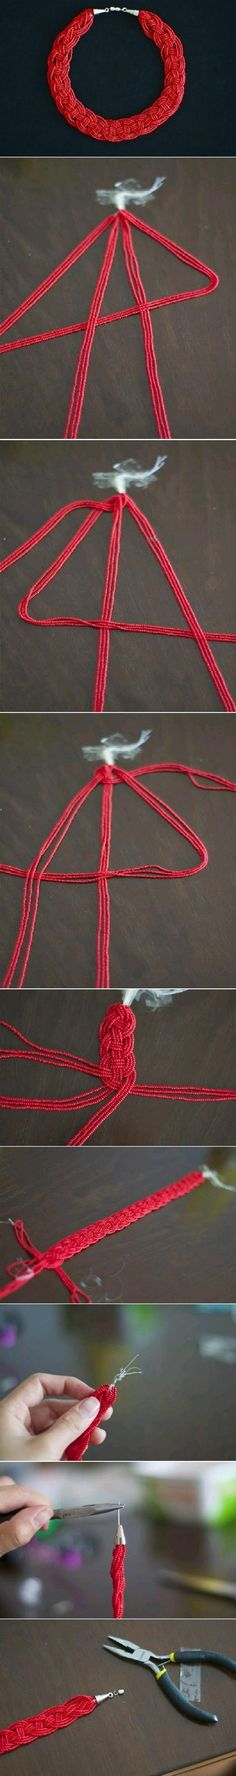 DIY Pretty Necklace